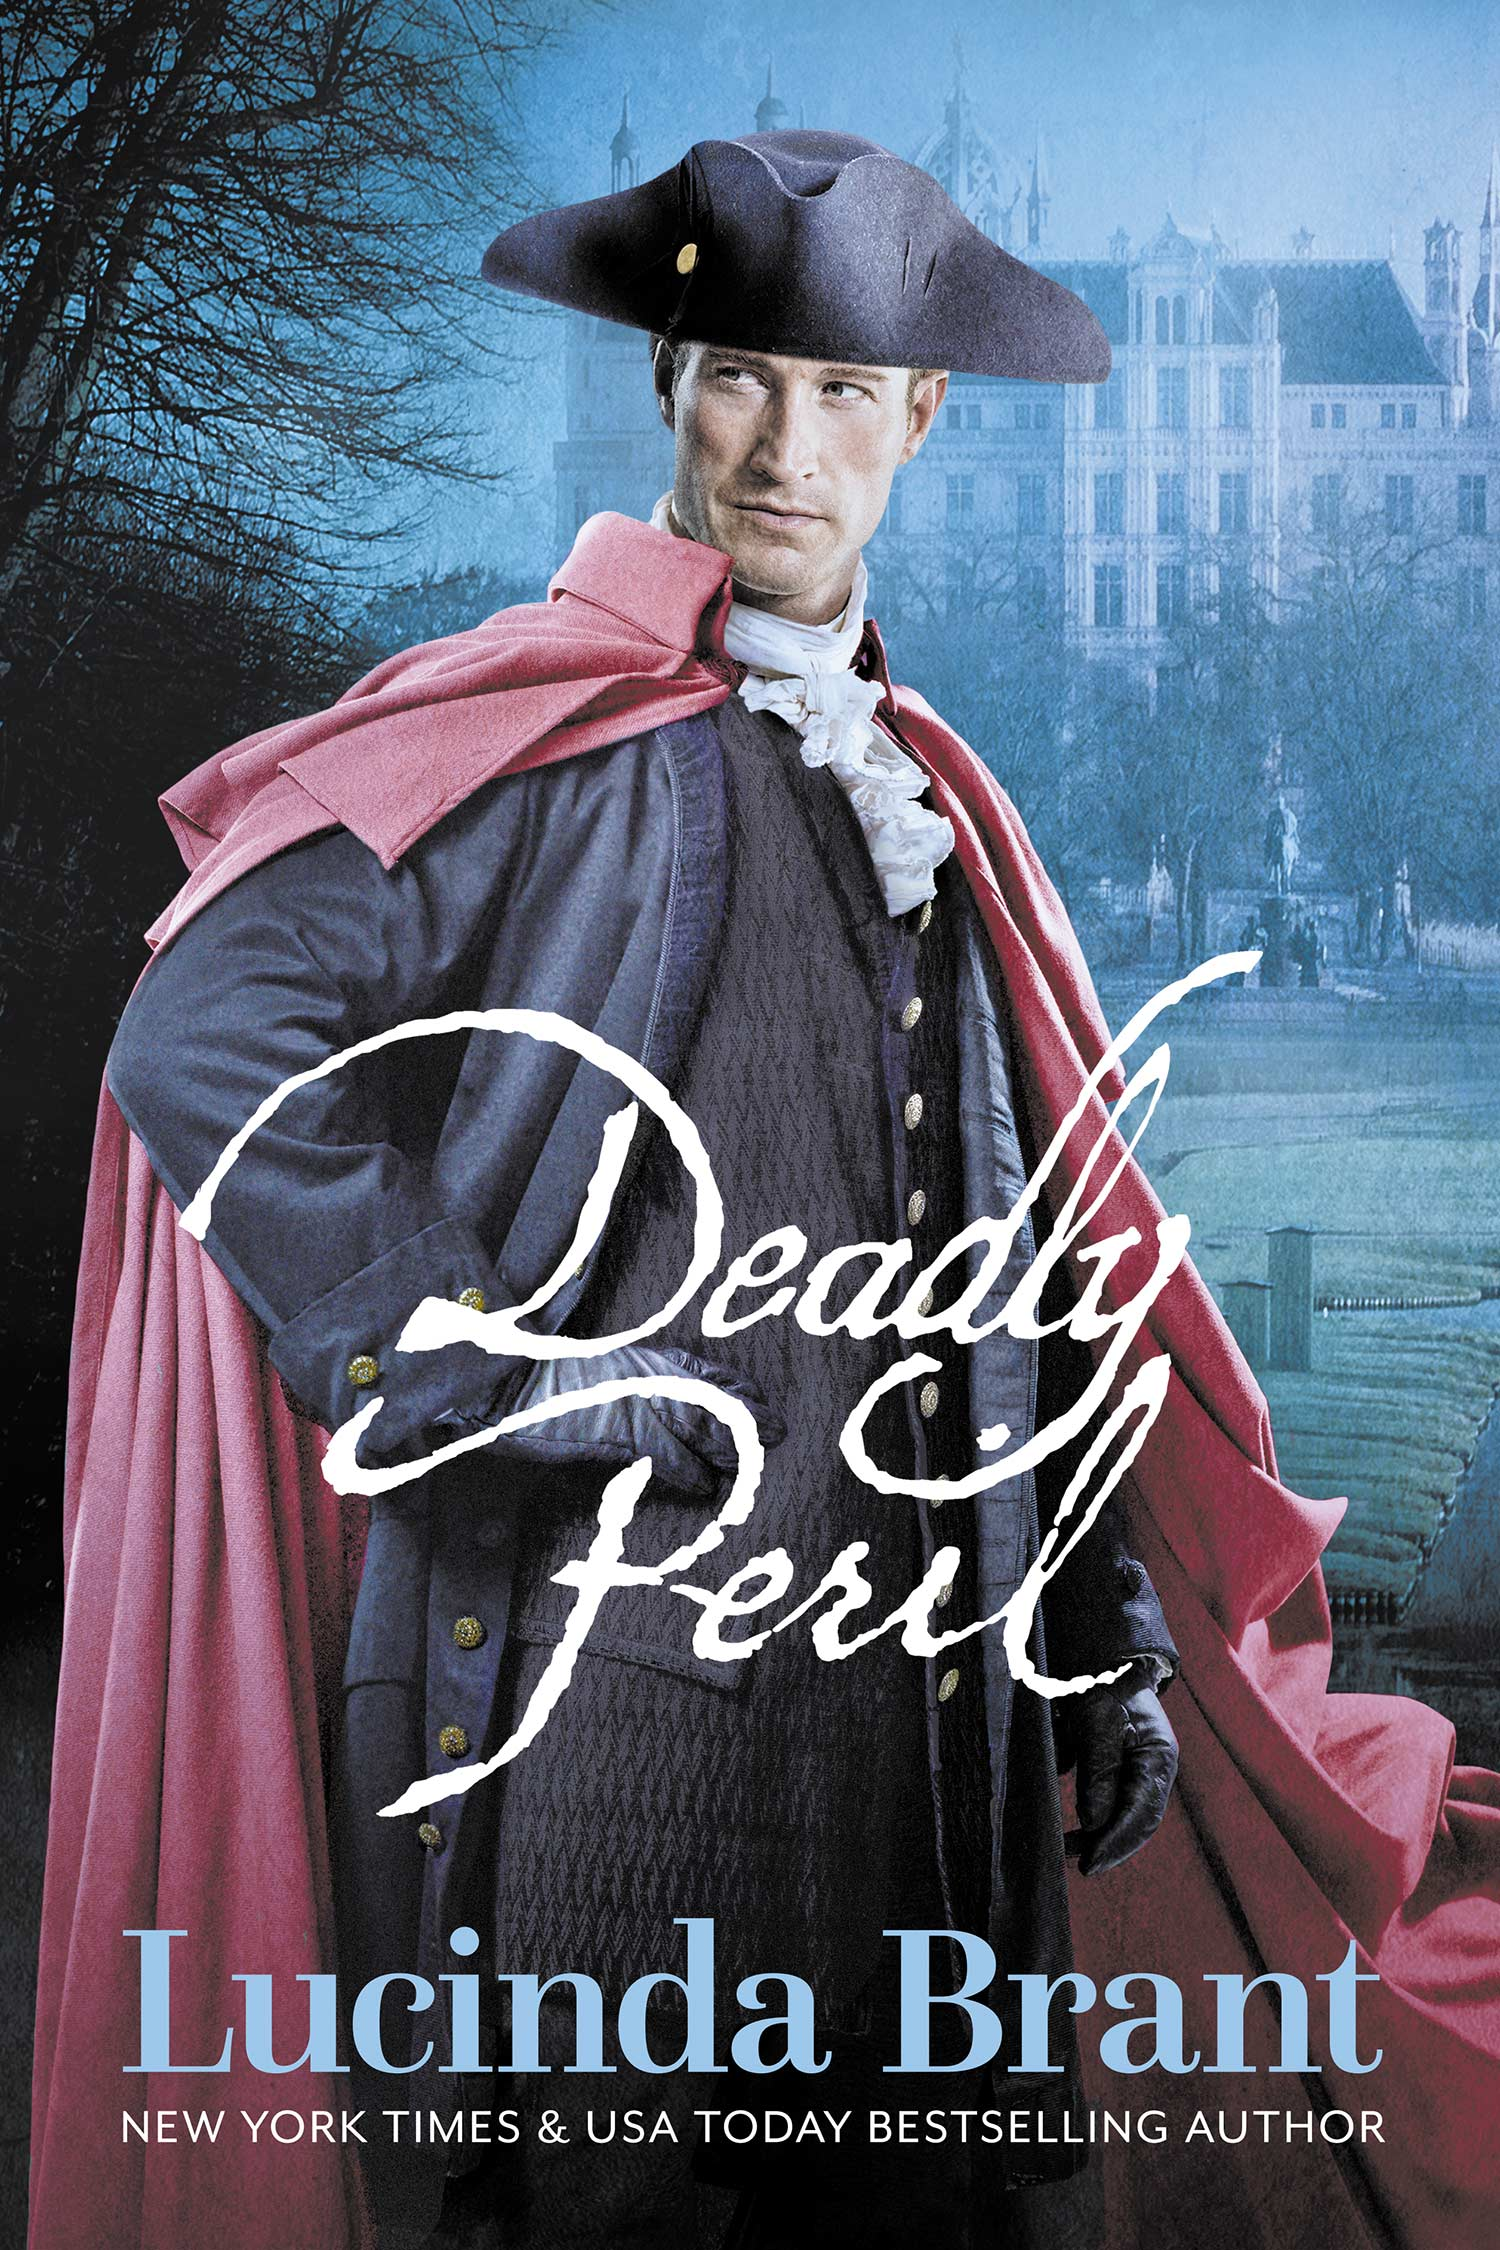 Deadly Peril: A Georgian Historical Mystery (Alec Halsey Mystery Book 3) by Lucinda Brant